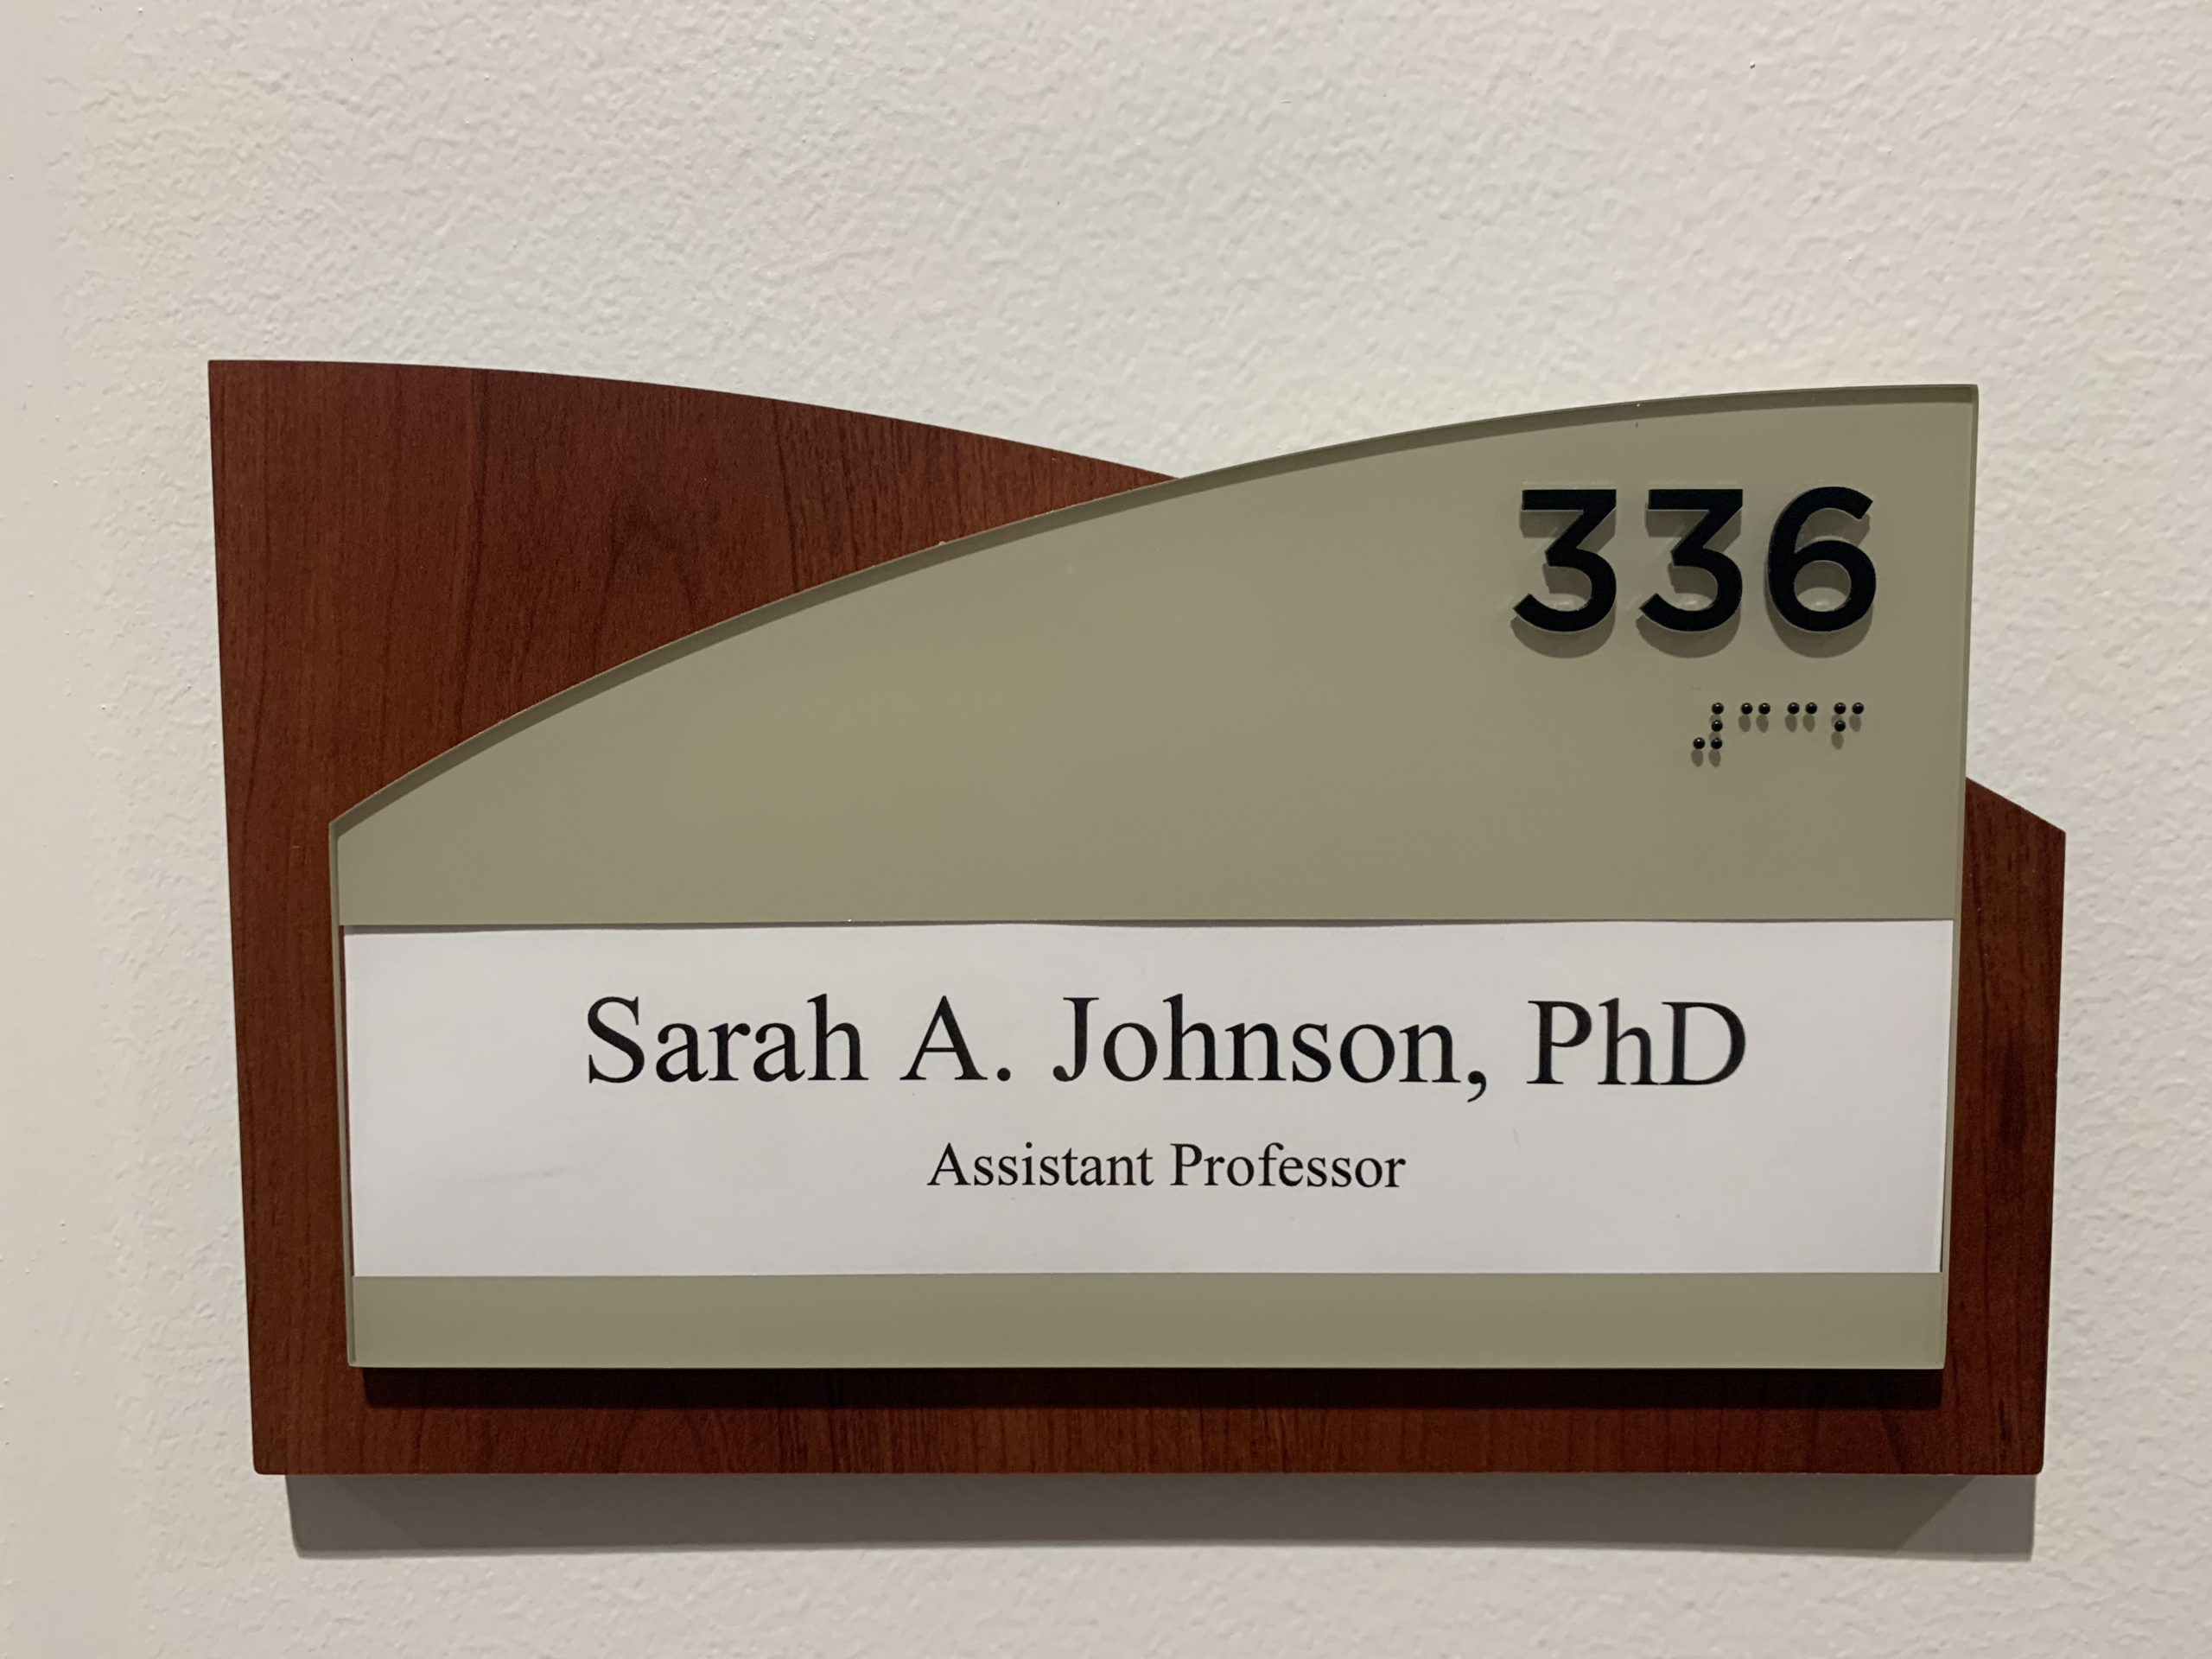 Doctor Johnson's assistant professor office placard